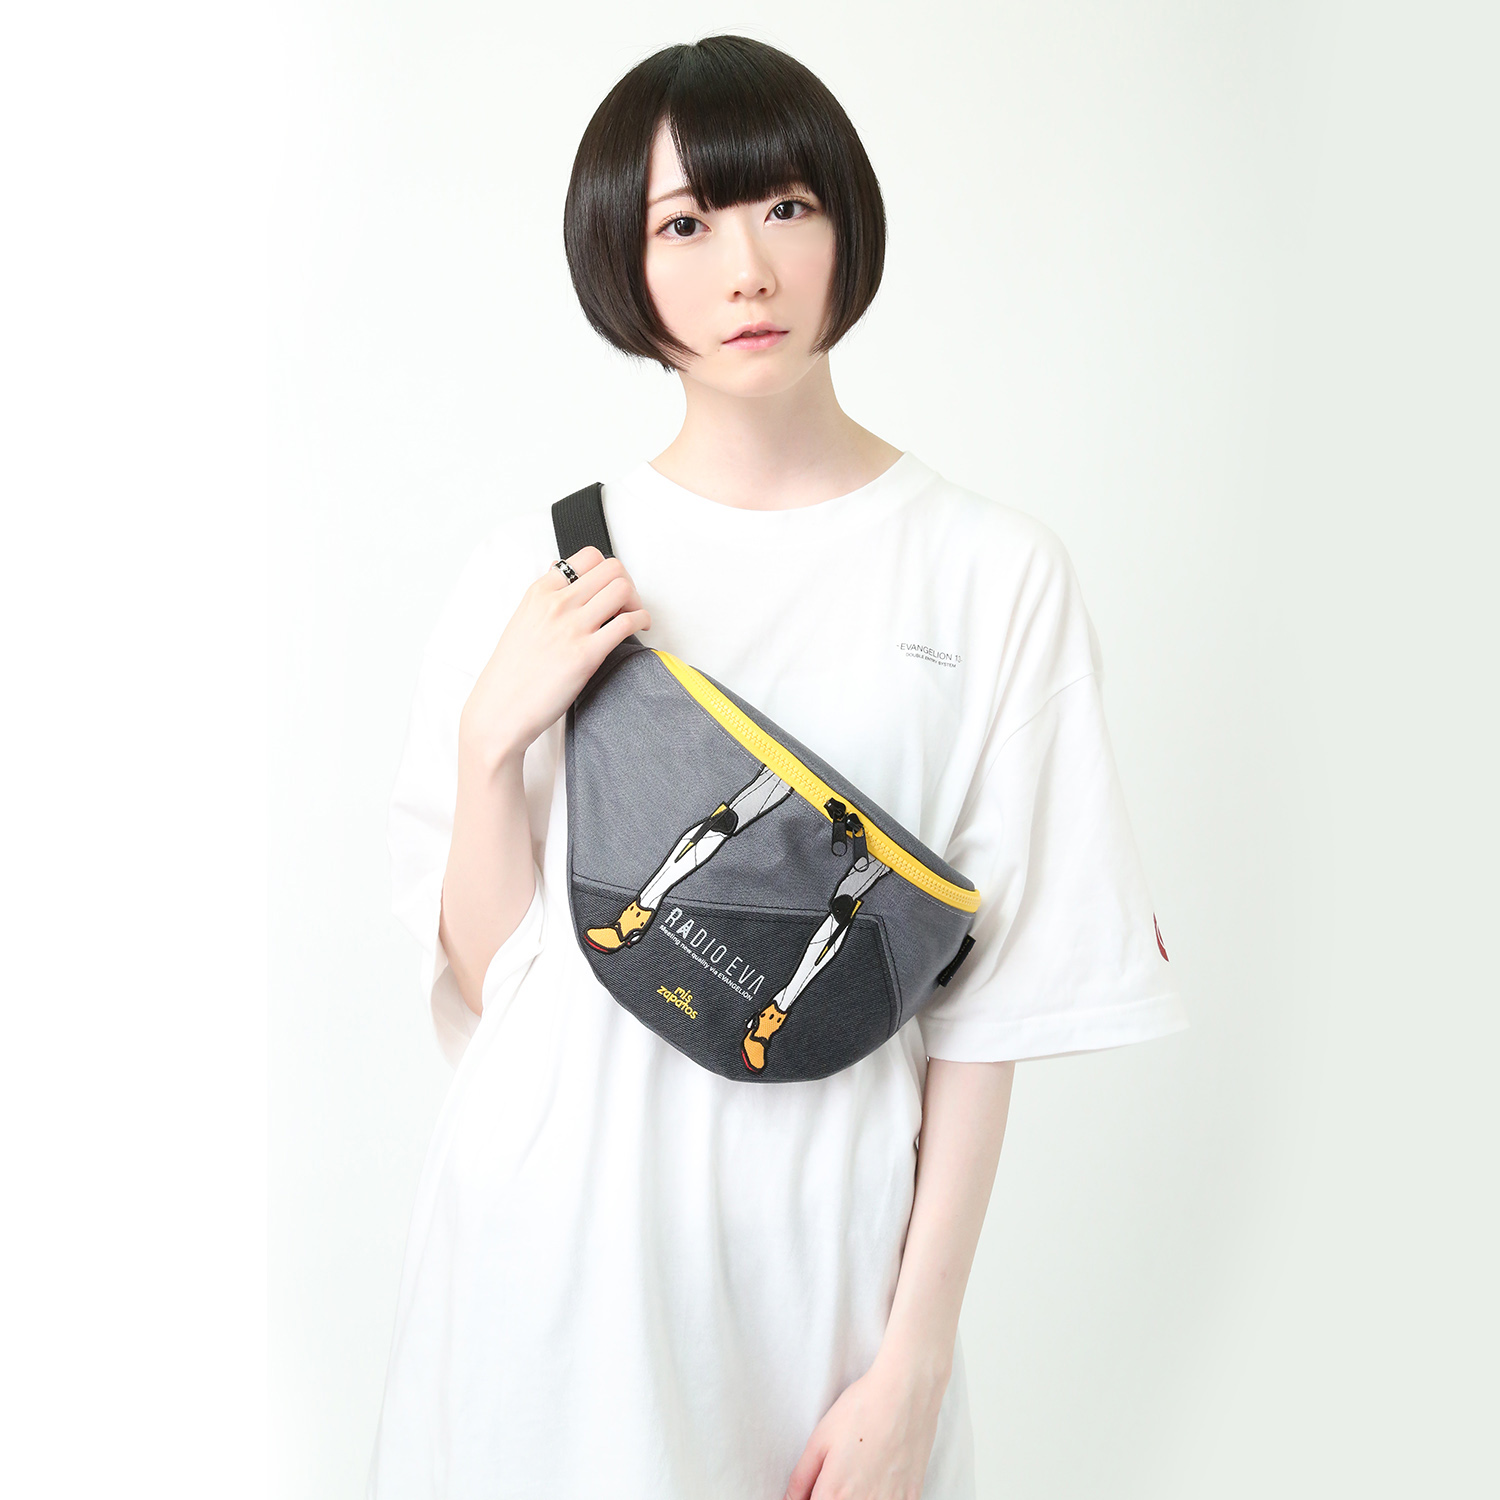 EVANGELION Bicolor Body Bag by mis zapatos (グレー(零号機))